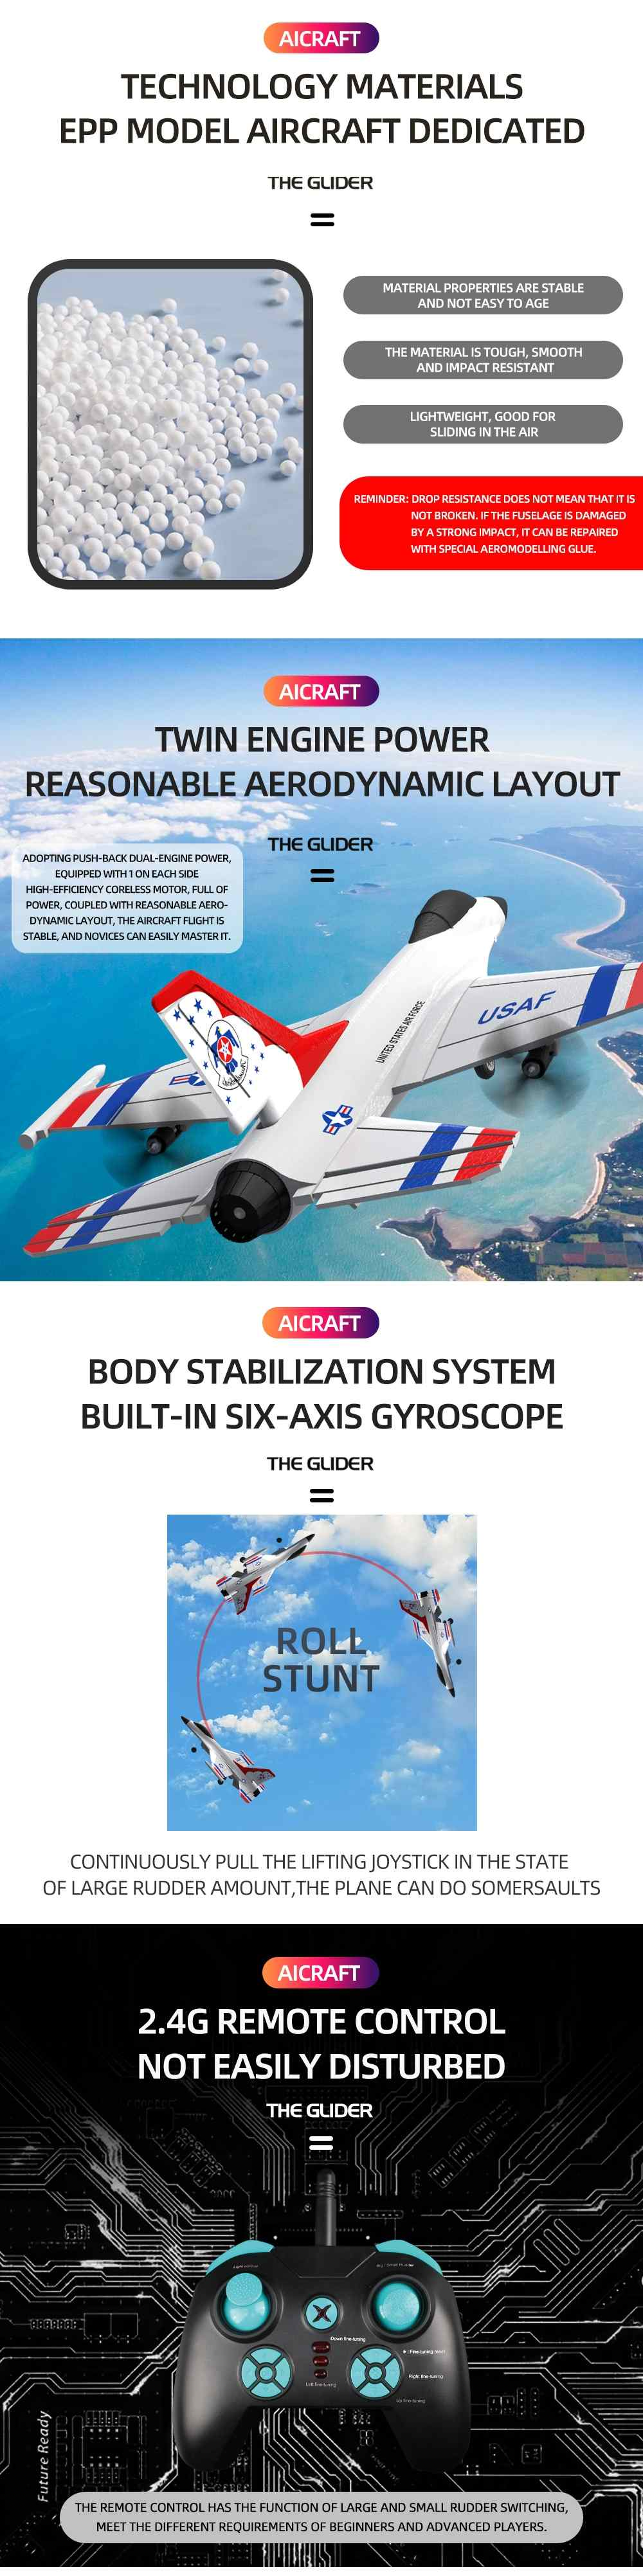 Hd15bb99285a74cedb6169b117e91b64bI - SUKHOI F16 314mm Wingspan 2.4Ghz 3CH Six-axis Gyroscope RTF RC Airplane Glider EPP RC Aircraft Remote control Outdoor Toys